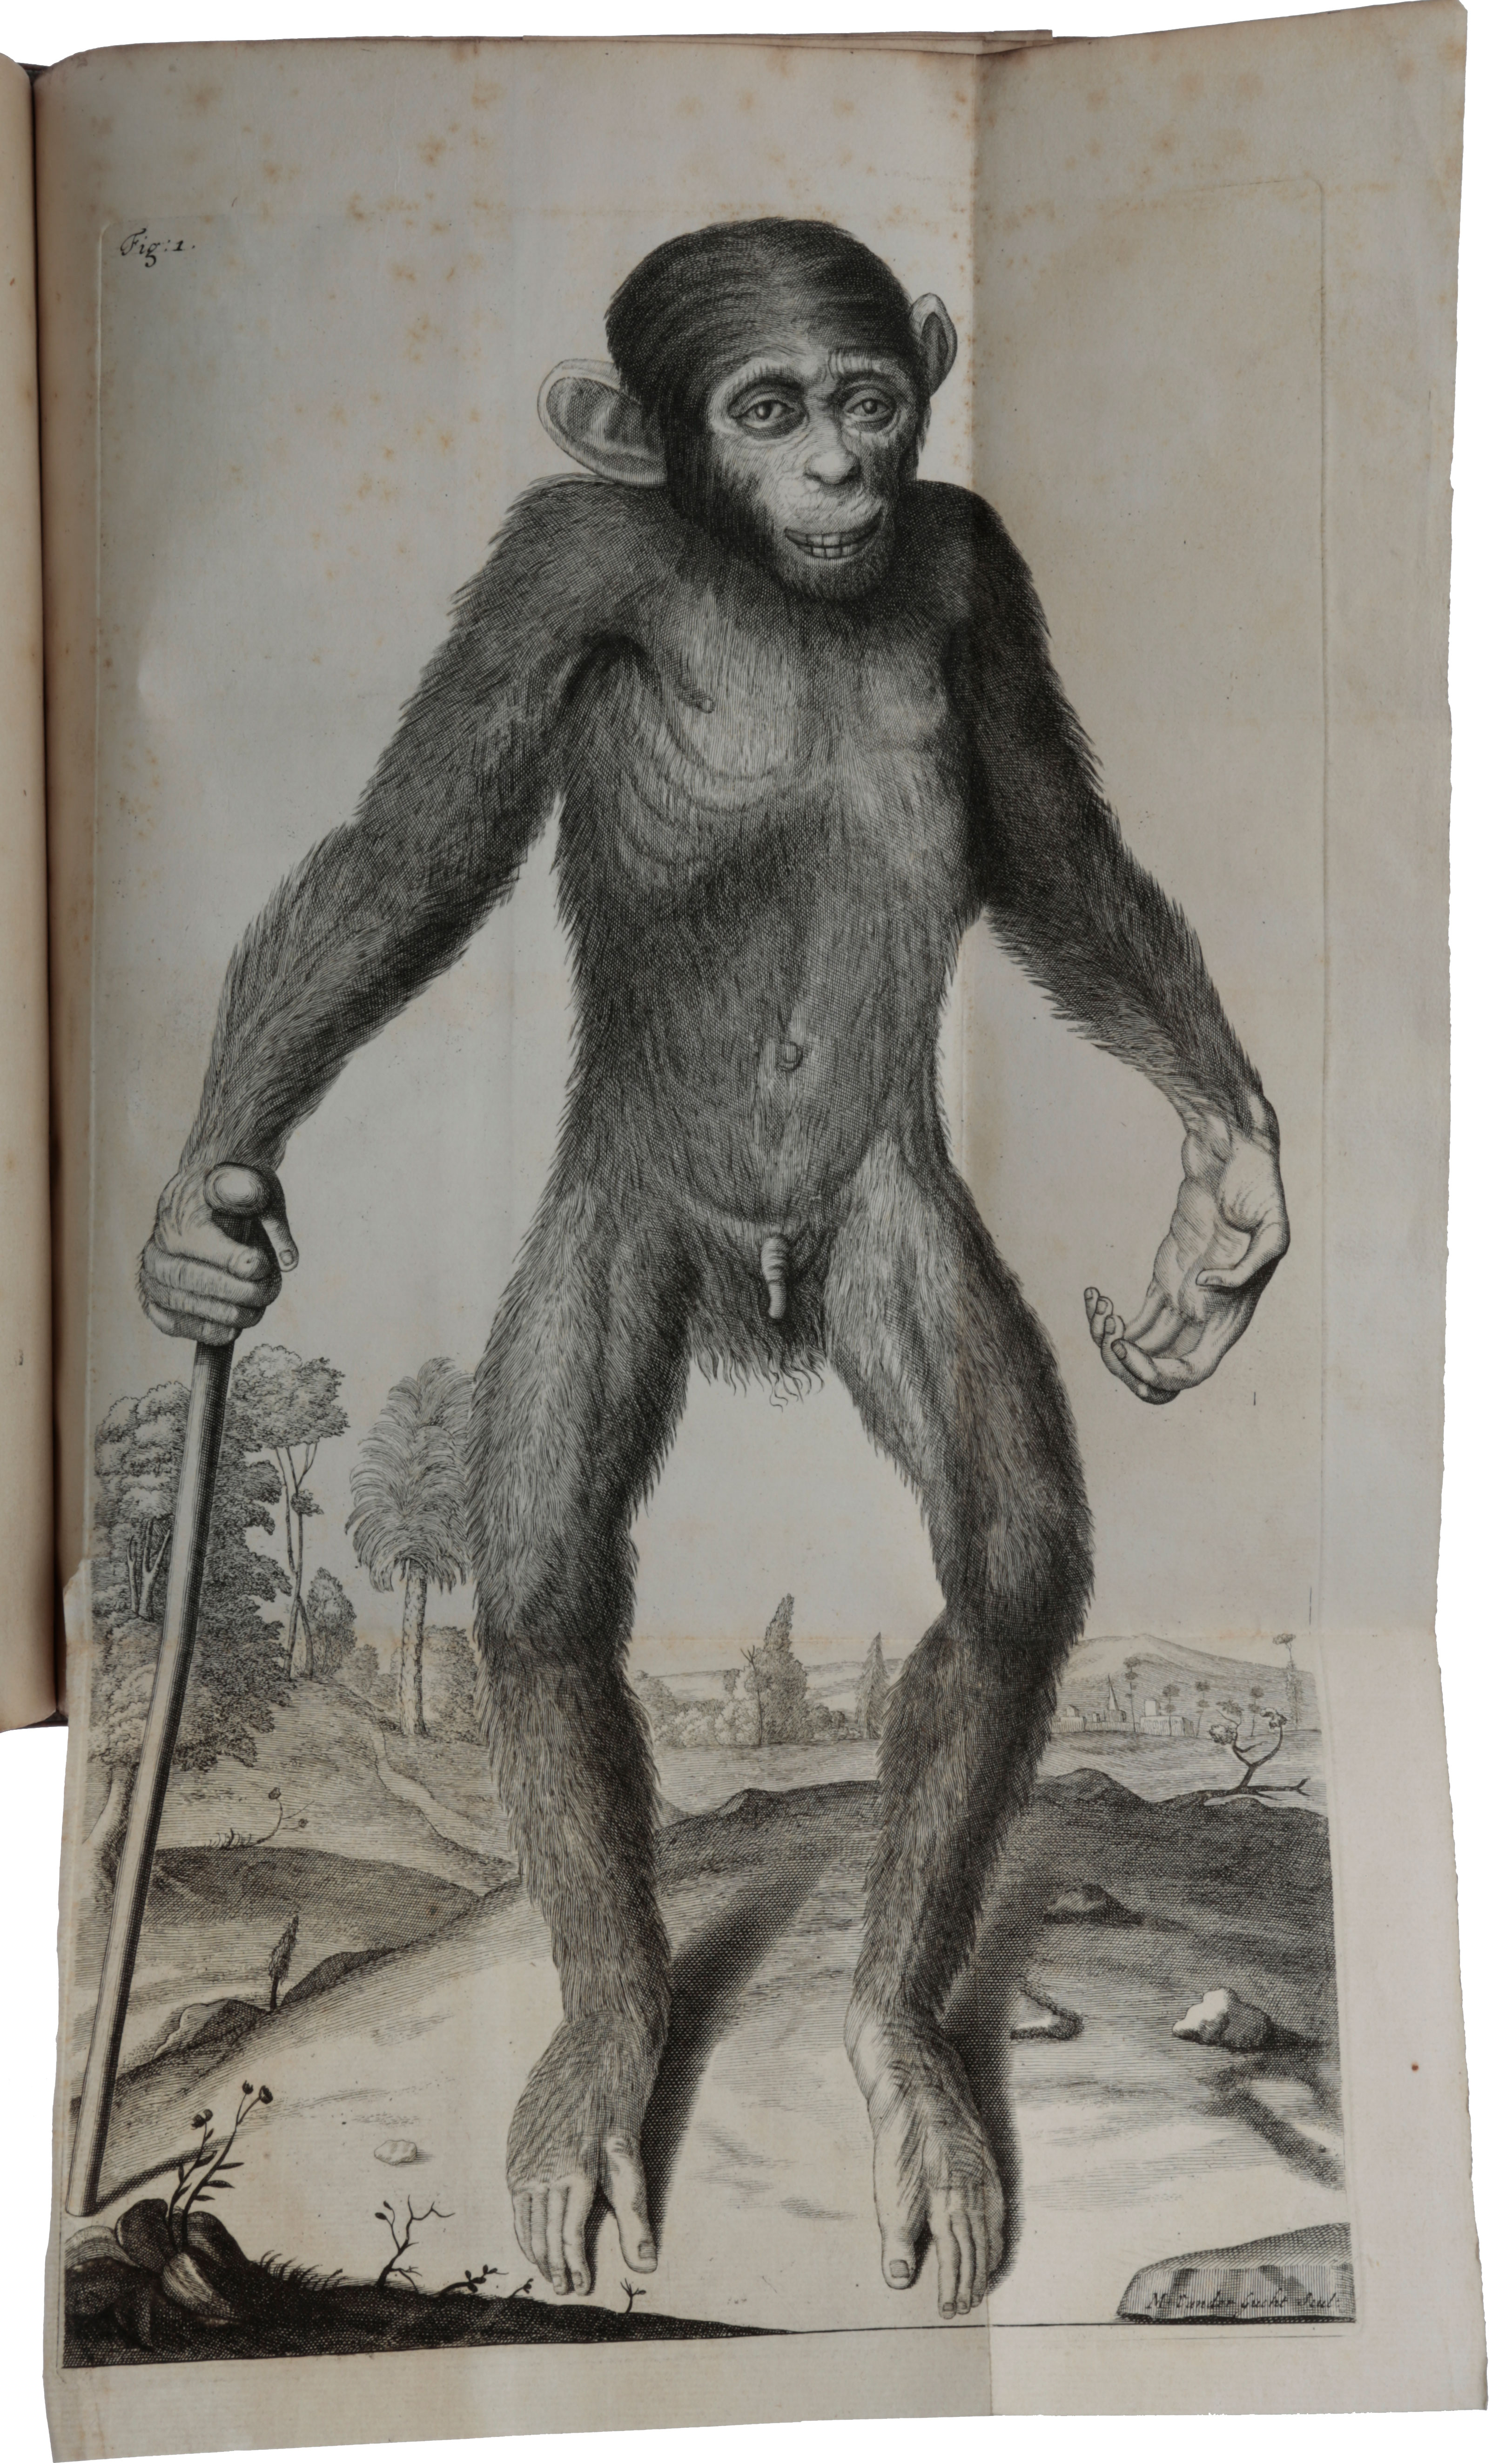 Orang-Outang, sive homo sylvestris; or, the anatomie of a pygmie compared with that of a monkey, an ape and a man. To which is added, a philological essay concerning the pygmies, the cynocephali, the satyrs, and sphinges of the Ancients. Wherein it will appear that they are all either apes or monkeys, and not men, as formerly pretended. Edward TYSON.